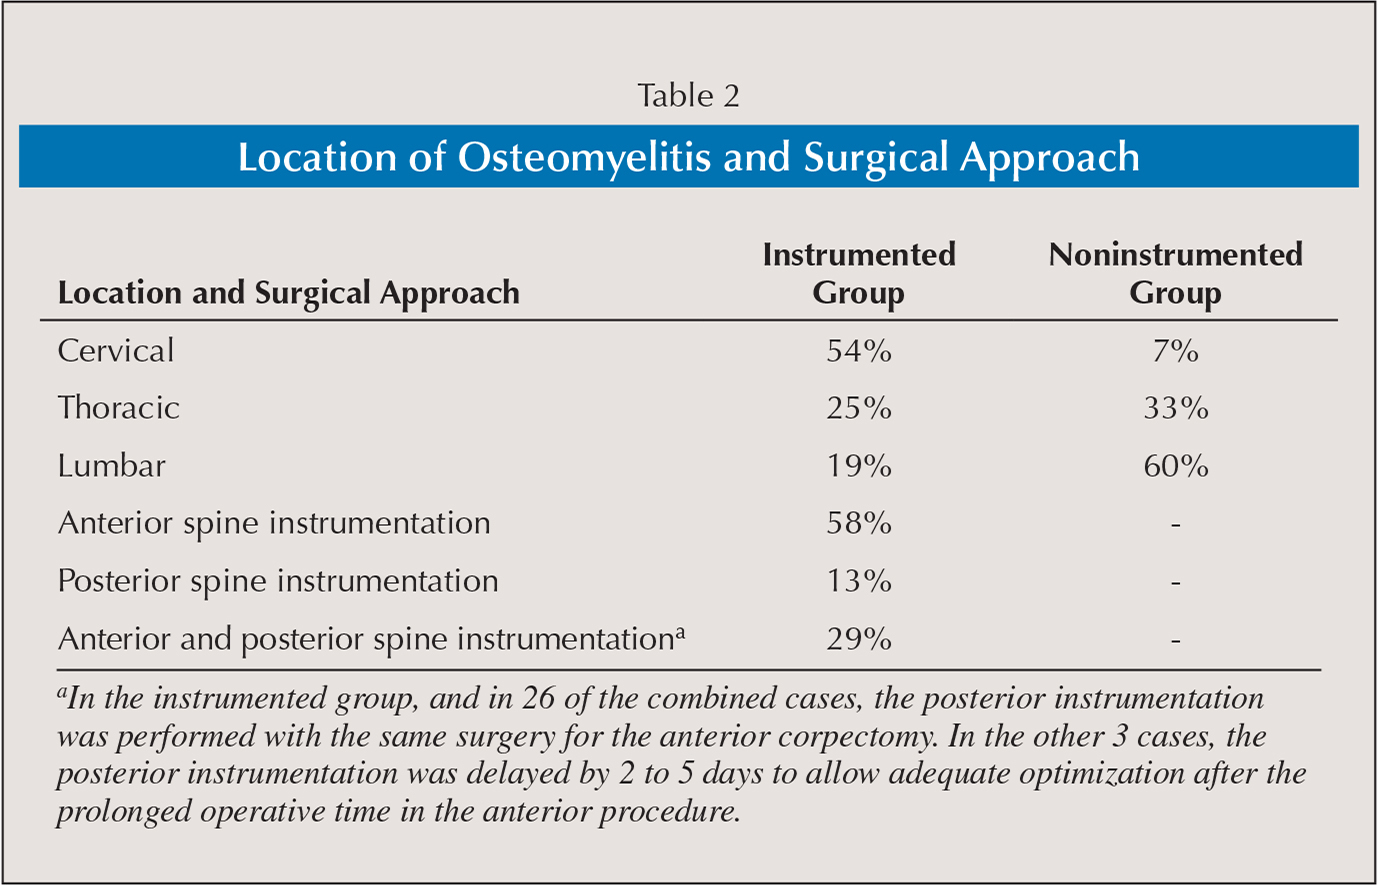 Location of Osteomyelitis and Surgical Approach